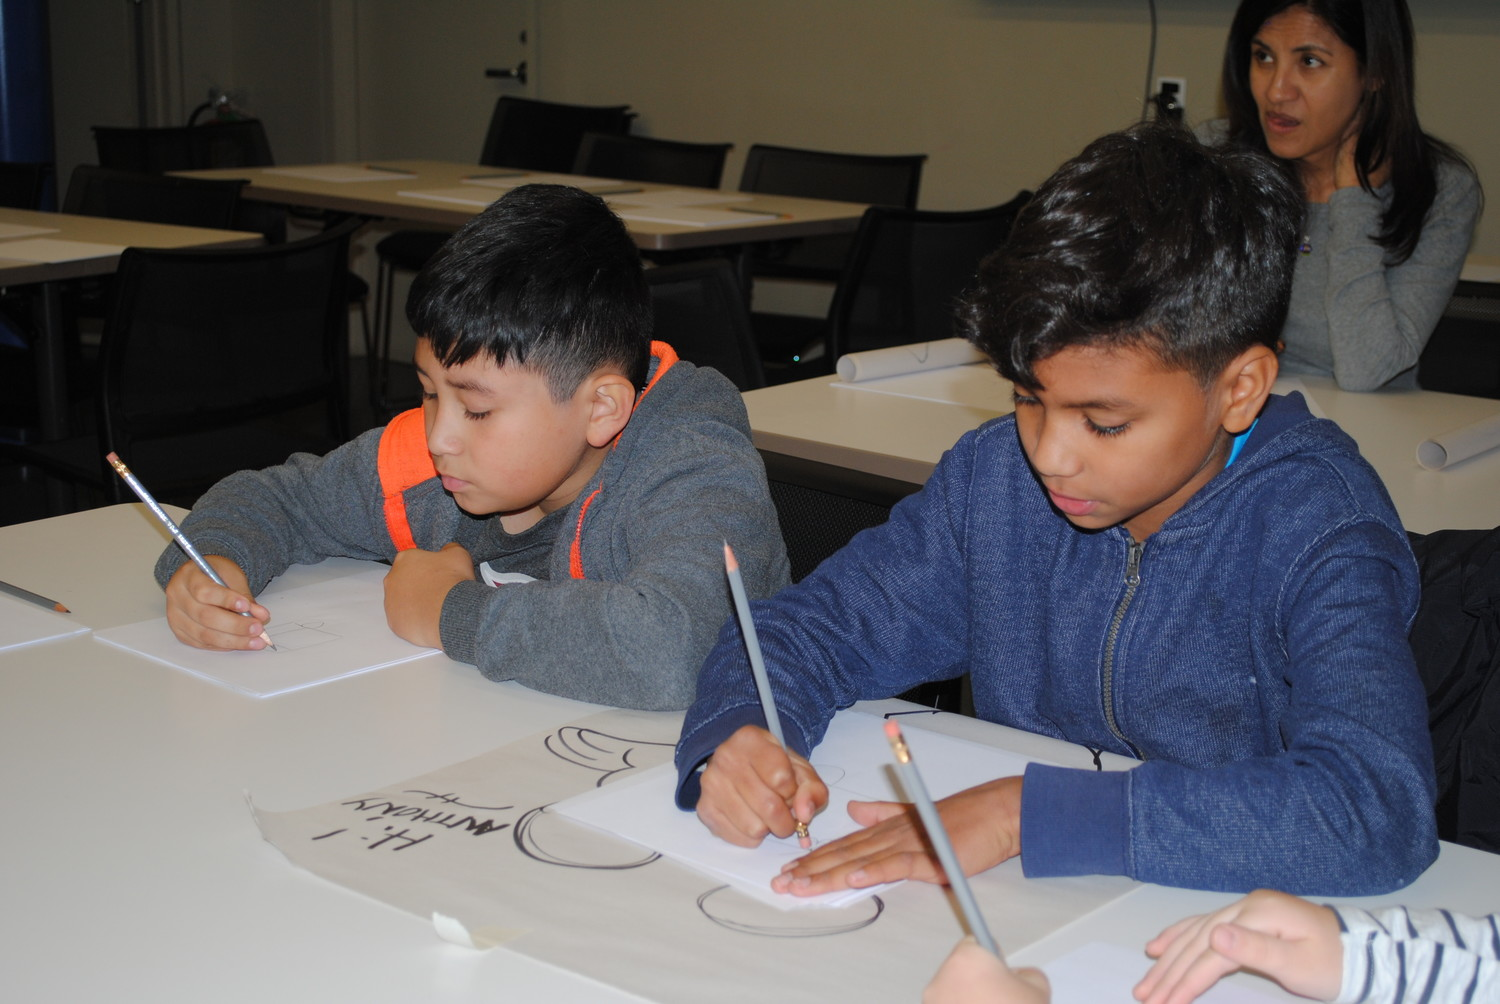 Bryant Reyes, 9, and Anthony Fernandez, 9, followed along with Ed Klein's instructions on how to draw Fred Flintstone.